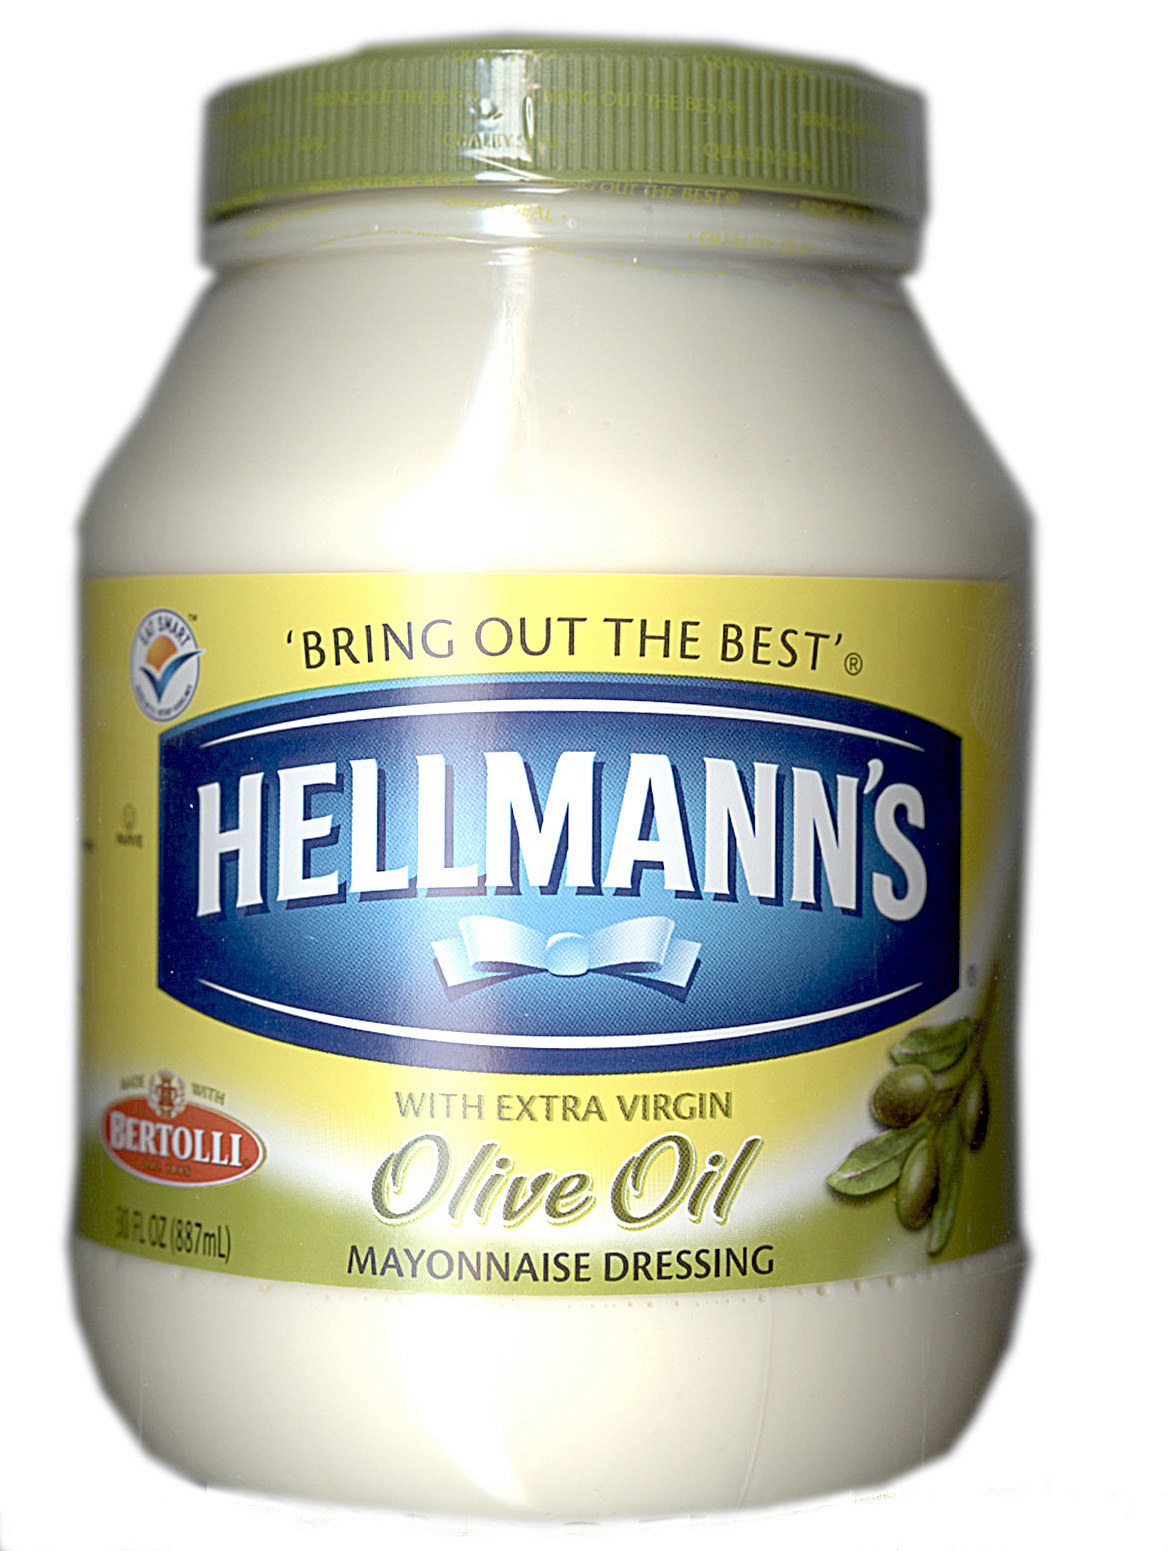 Mayonnaise can work best for hair as it contain egg, vinegar and oil ...